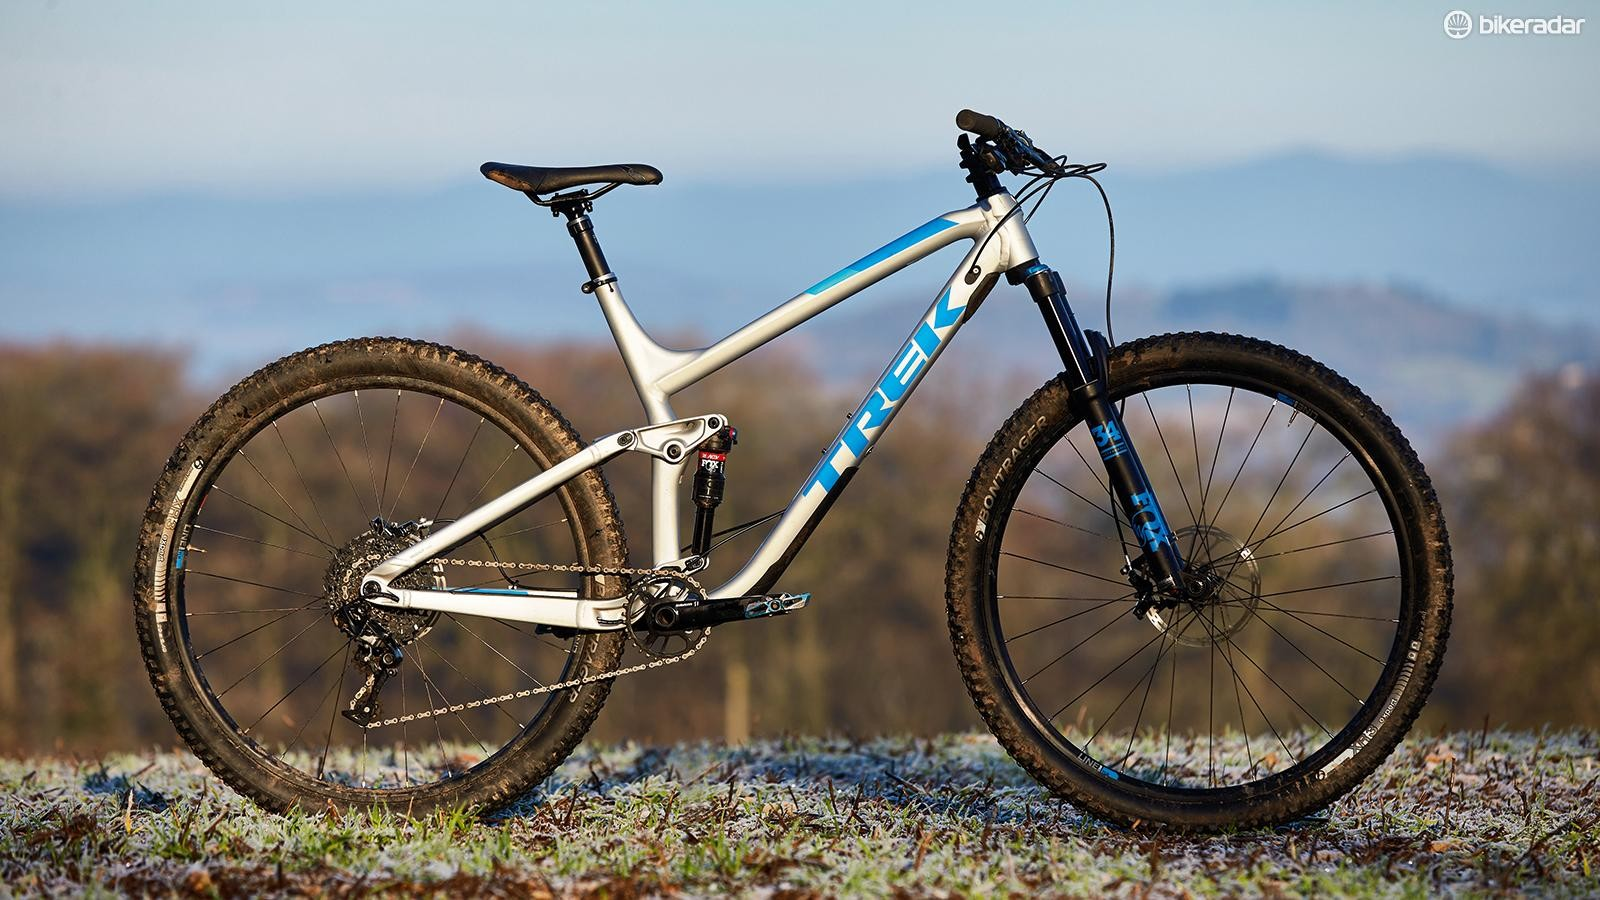 The Trek Fuel EX 9 29